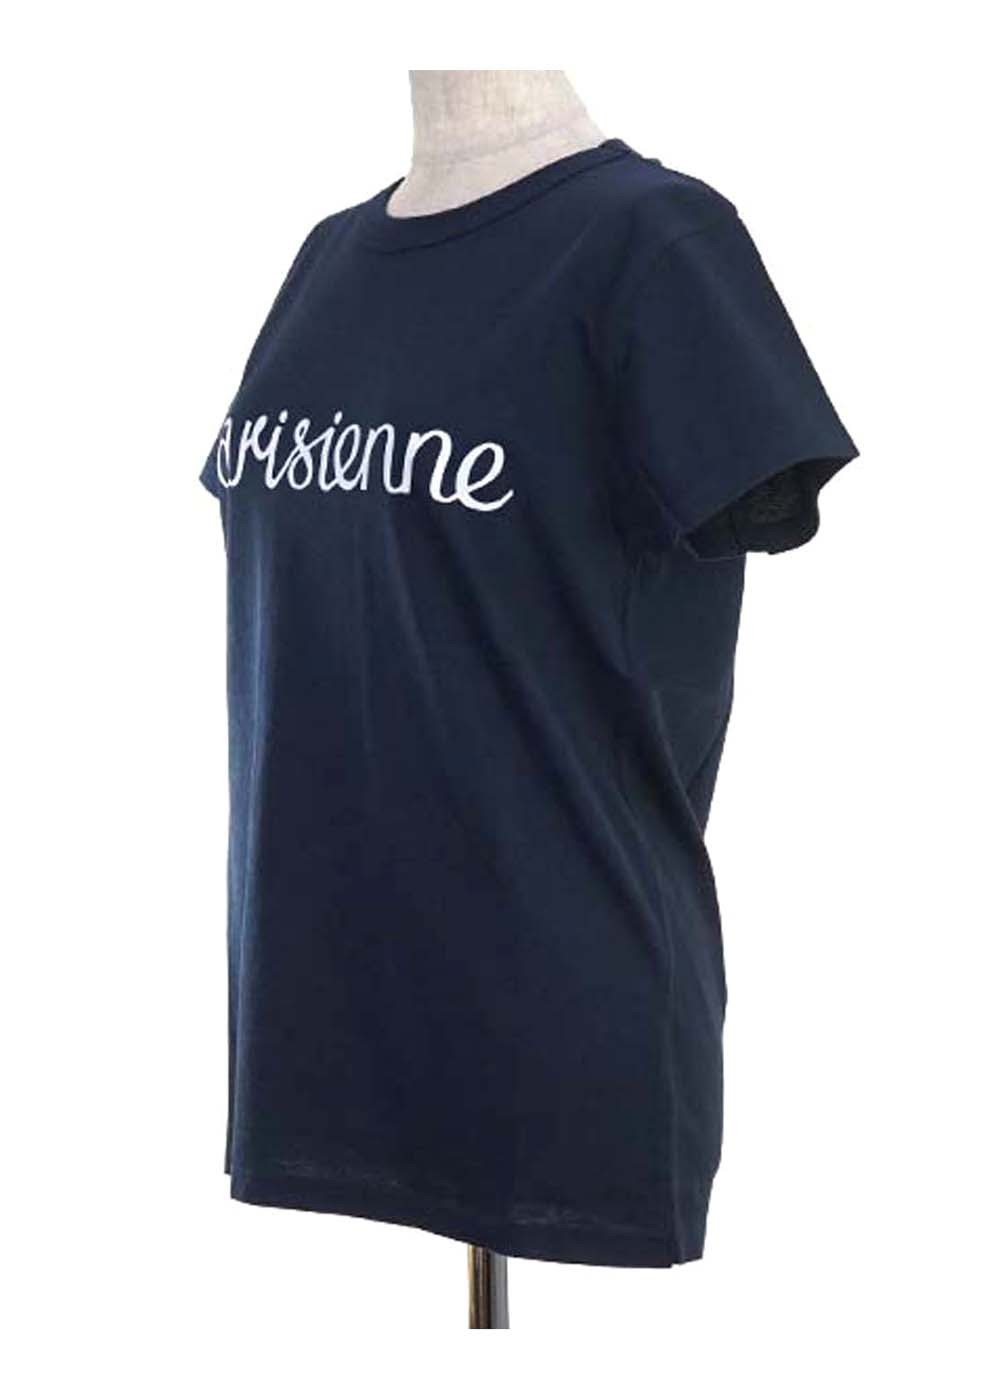 【最大35%OFF】TEE SHIRT PARISIENNE|NAVY|Tシャツ|MAISON KITSUNE